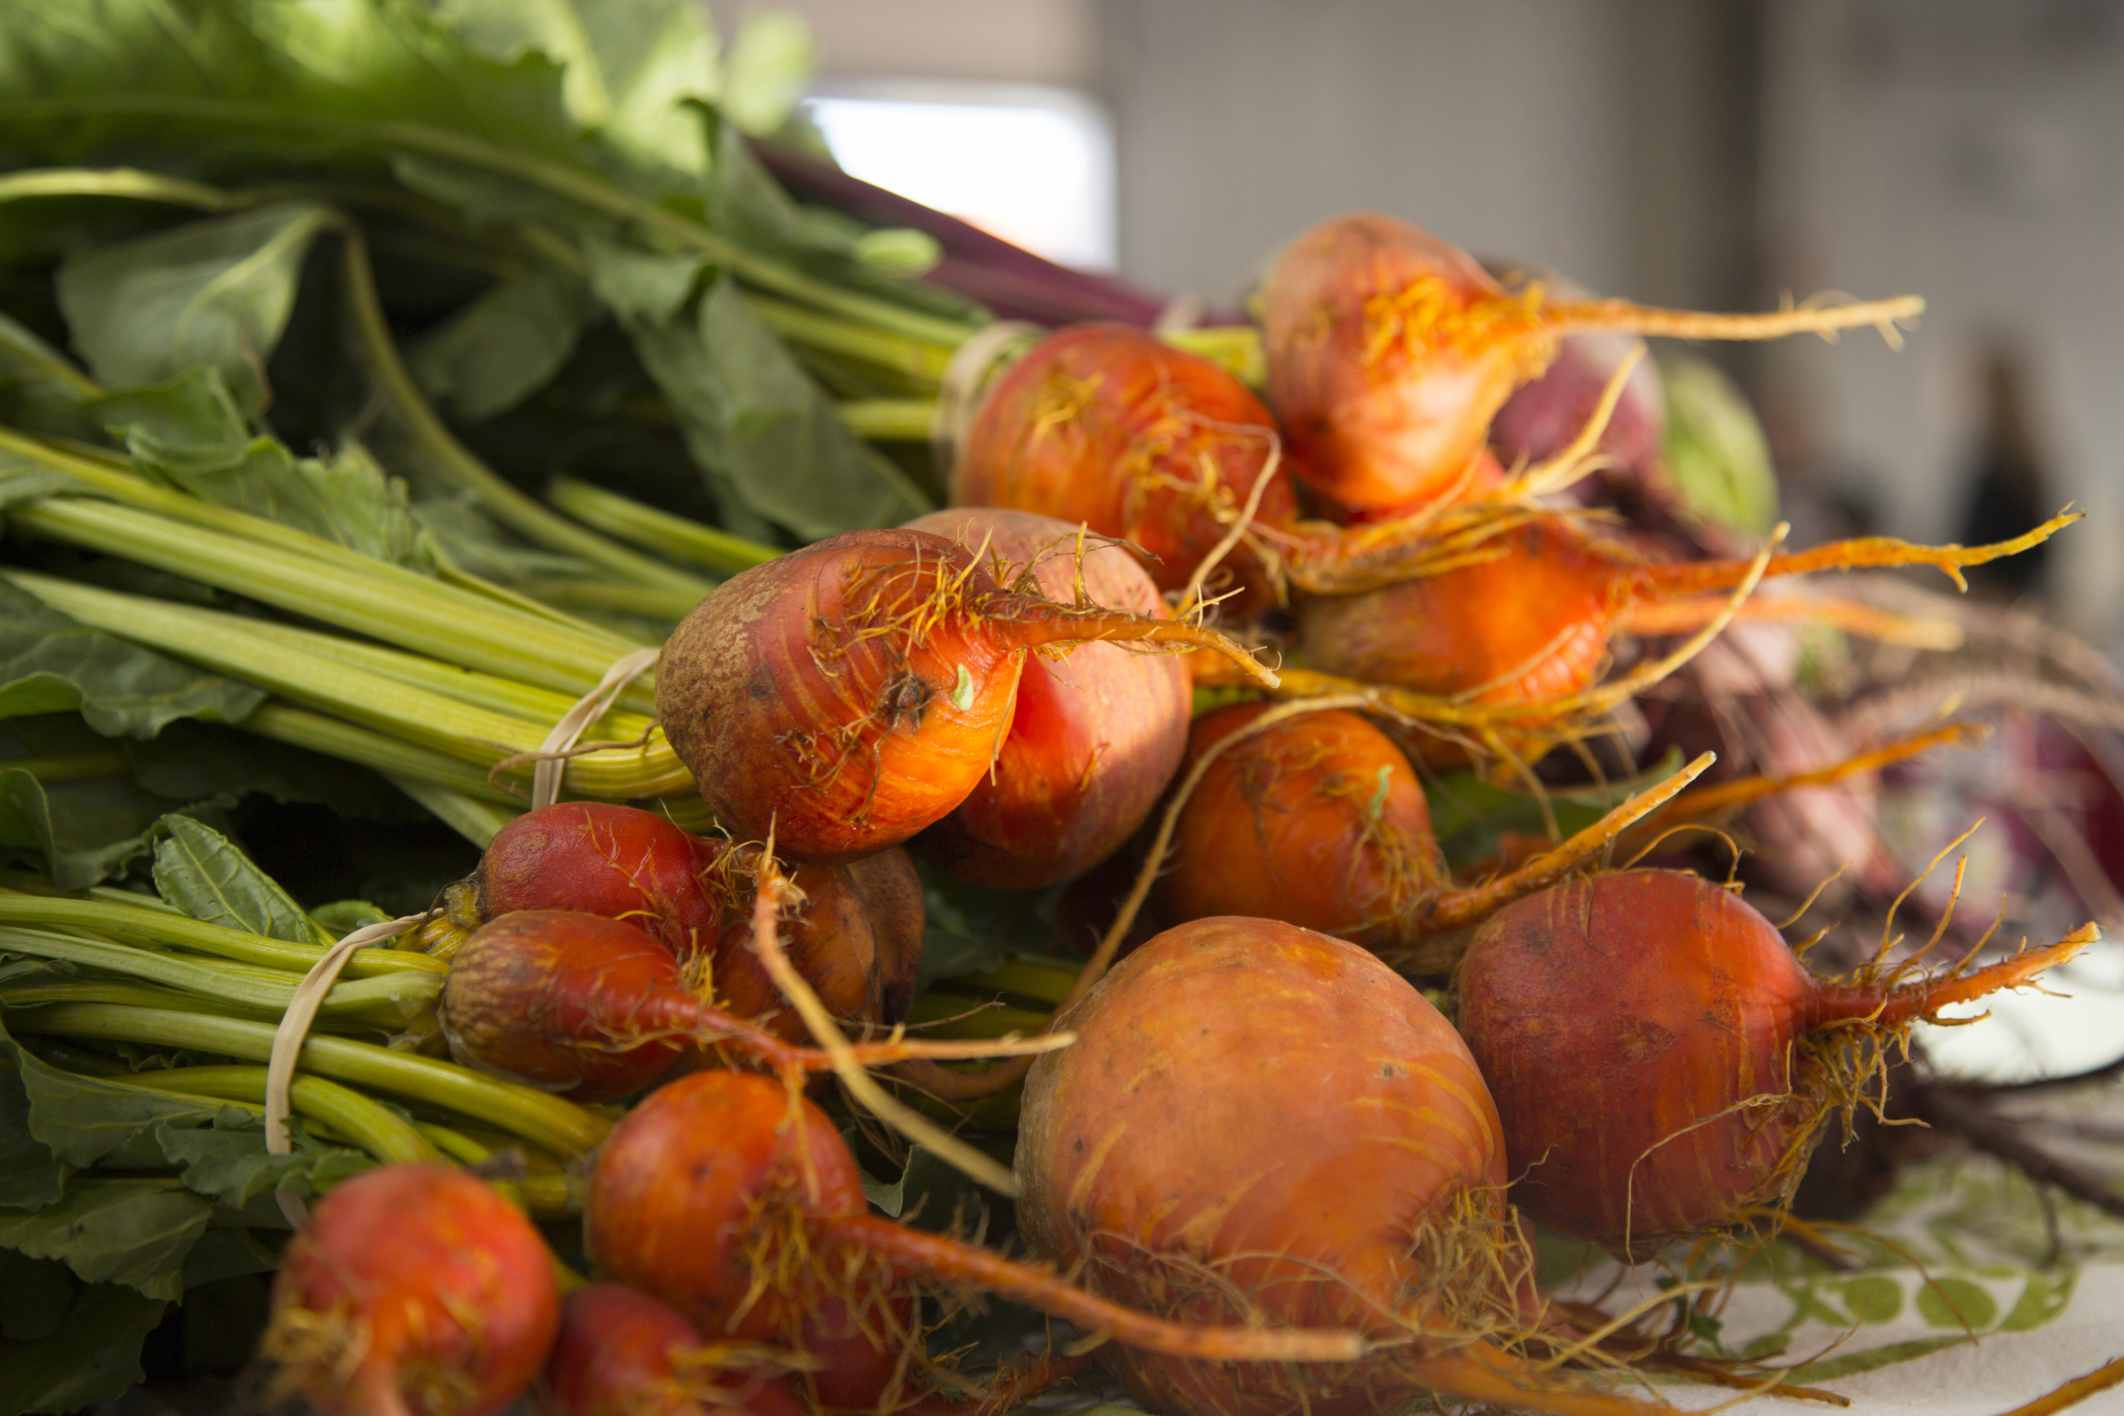 Yellow Beets with Greens